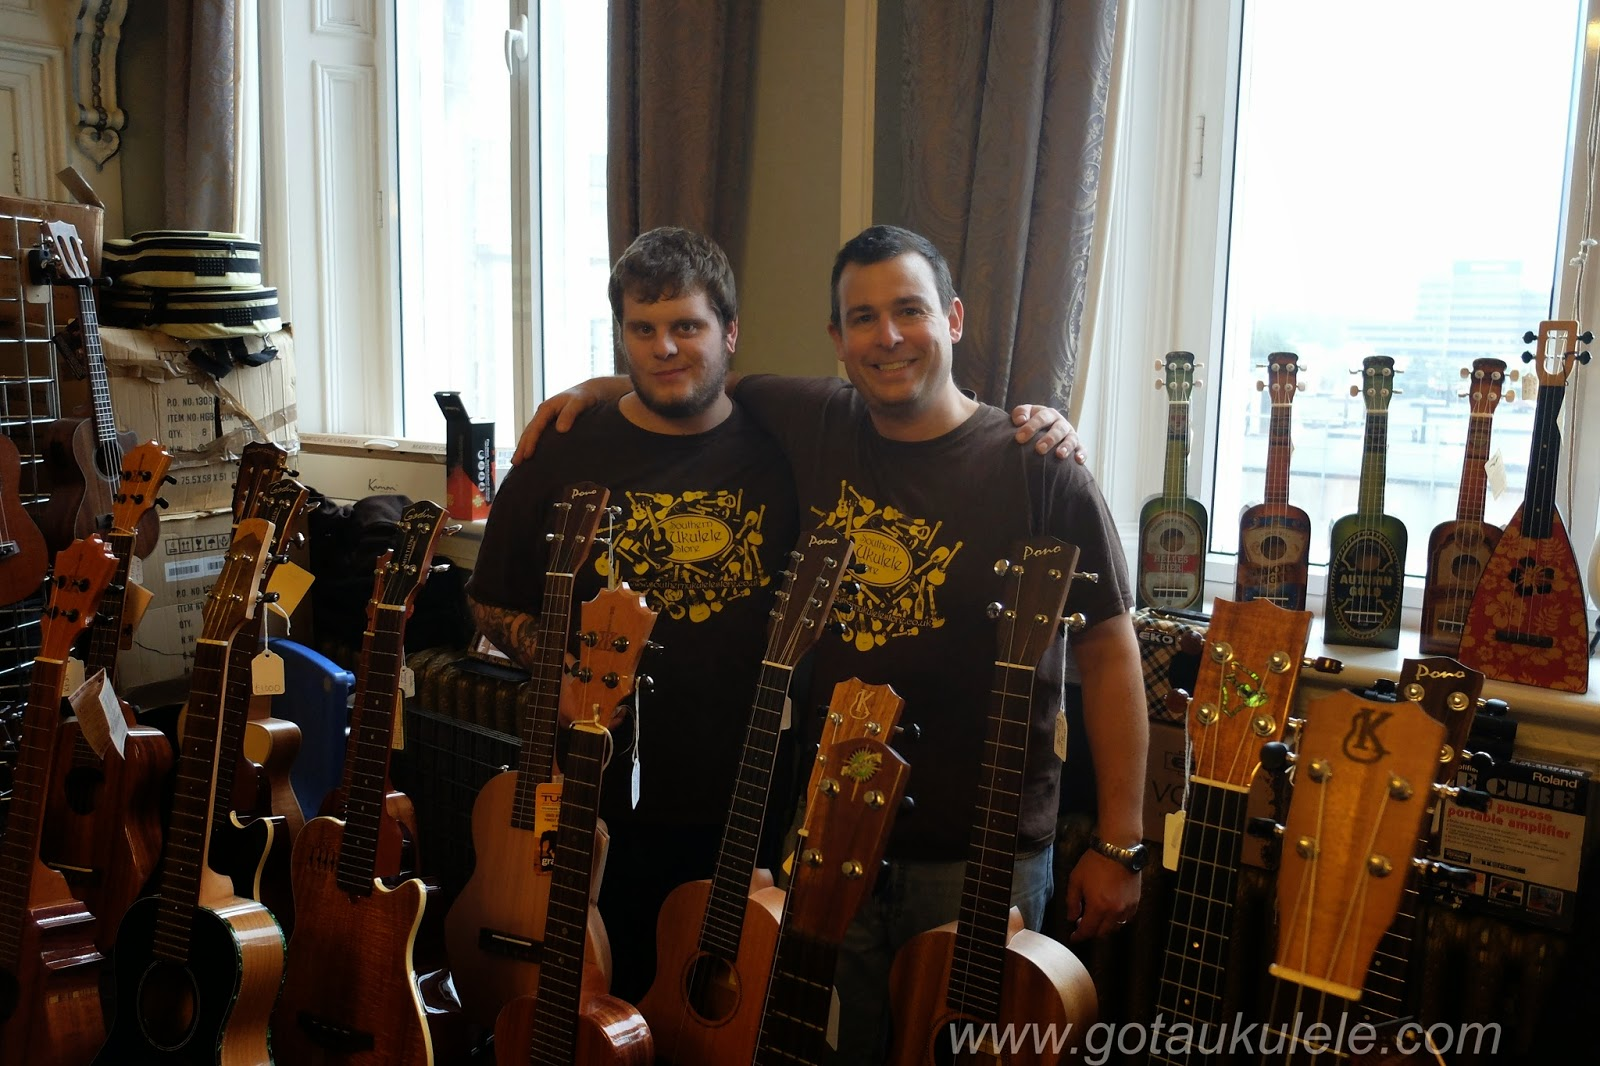 Grand Northern Ukulele Festival #GNUF Team SUS